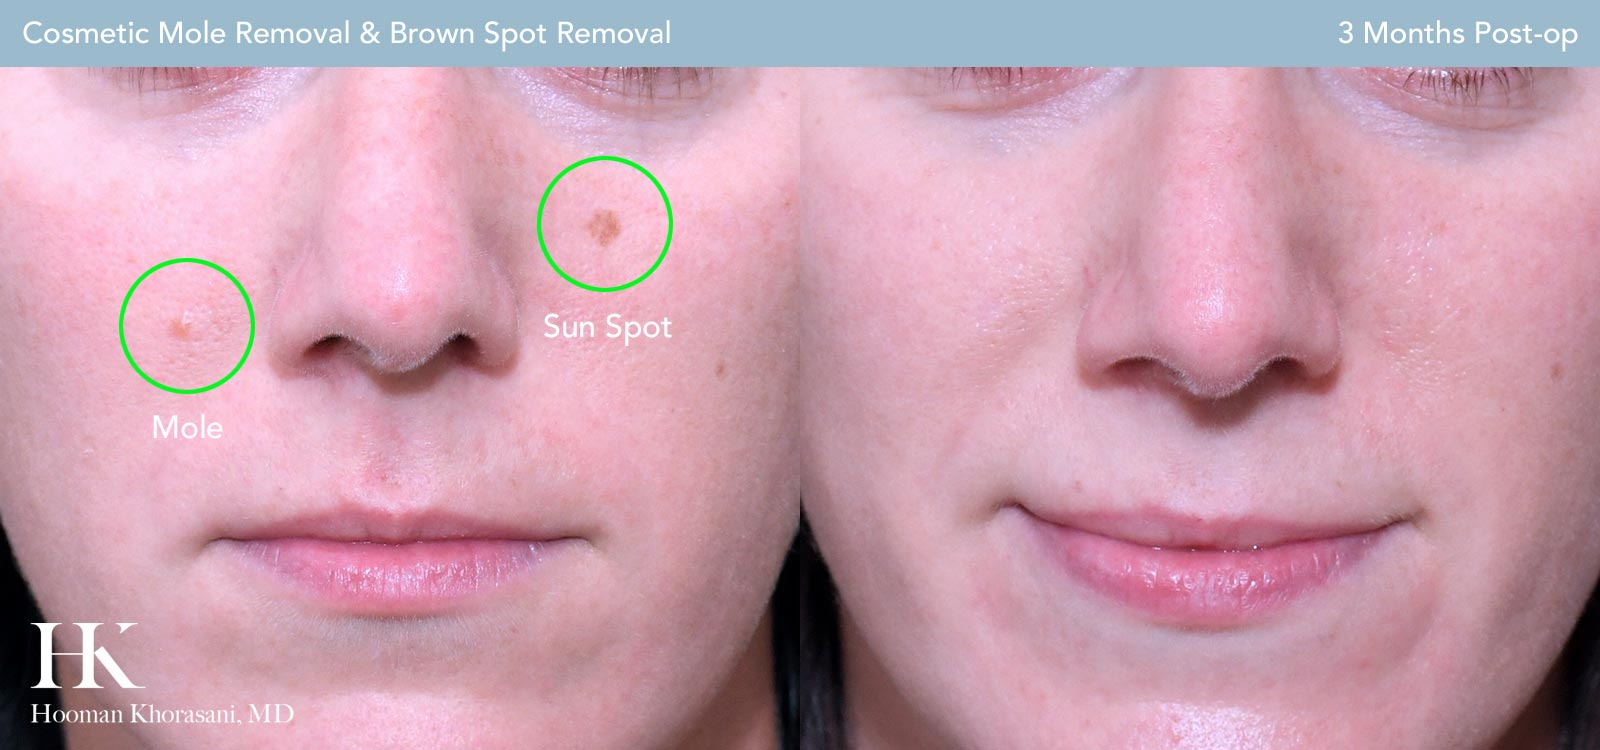 Visit our Cosmetic Mole Removal Gallery